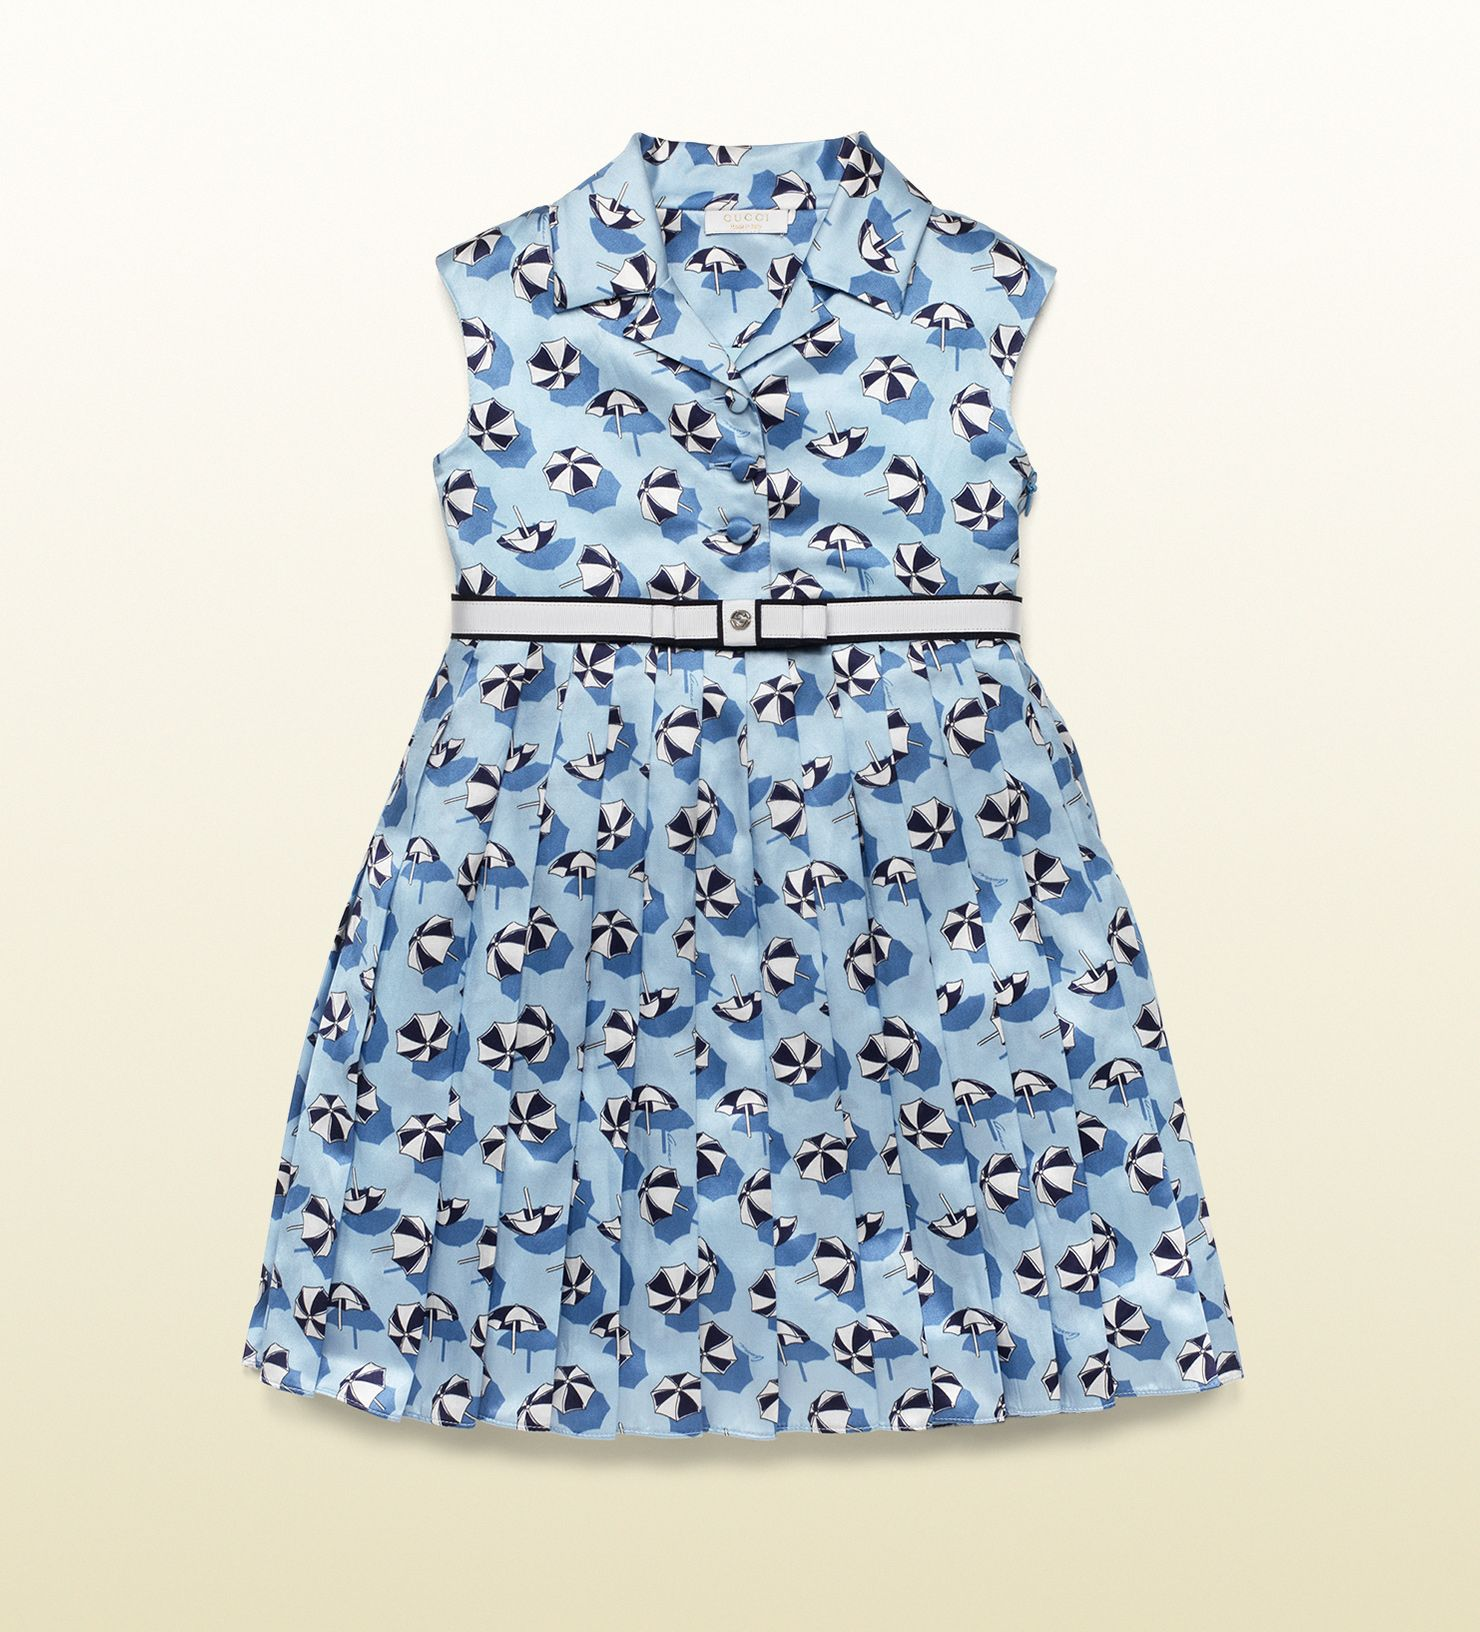 Gucci Girls 4 12 Years Girls Designer Clothes Clothes Girls Dresses [ 1632 x 1480 Pixel ]